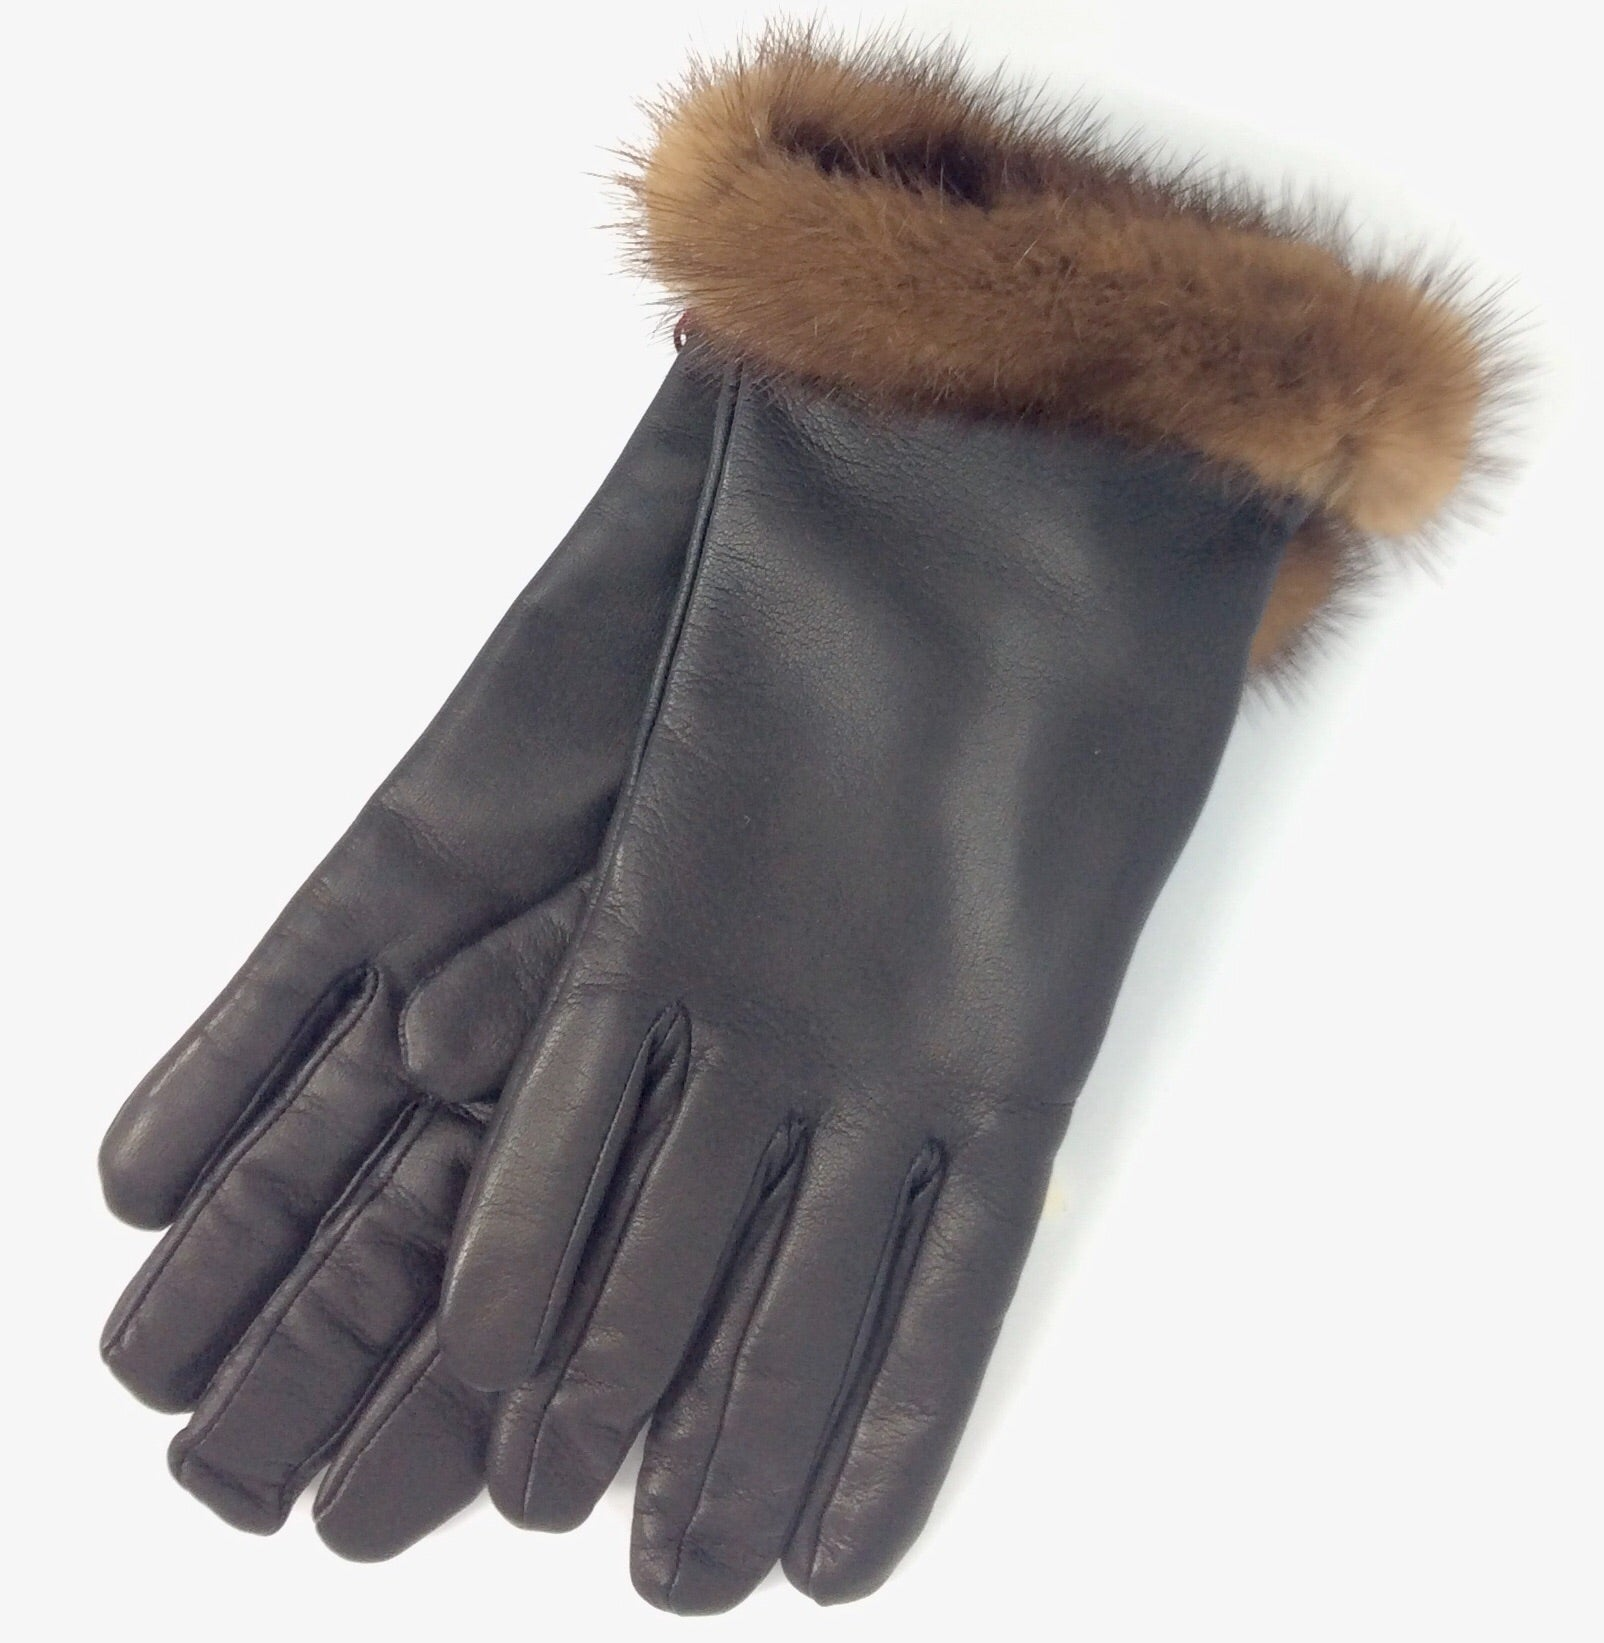 Italian black leather gloves with brown fur trim